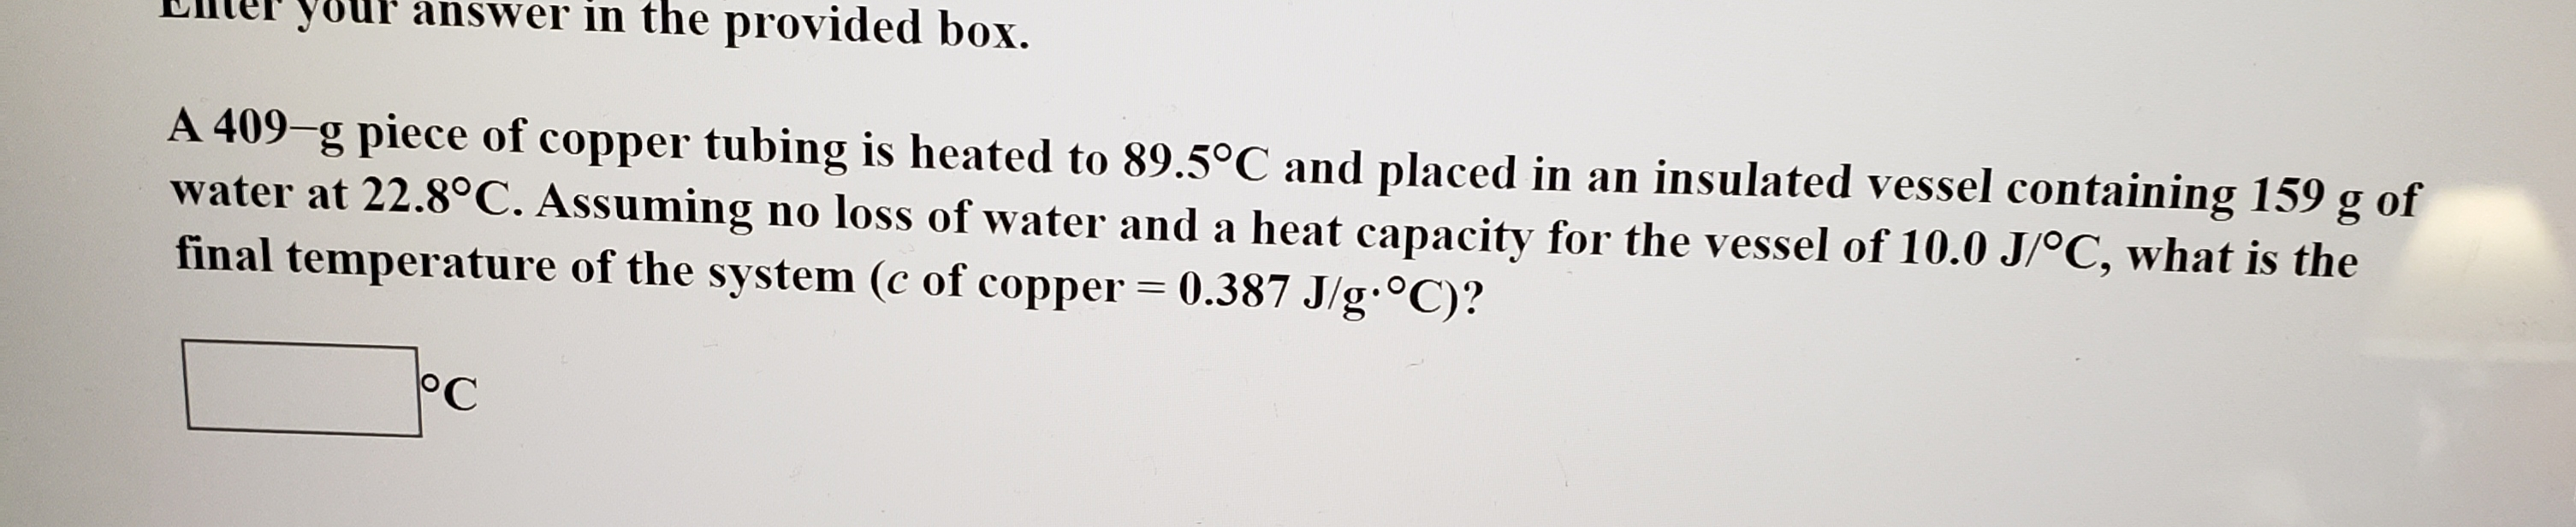 your answer in the provided box. A 409-g piece of copper tubing is heated to 89.5°C and placed in an insulated vessel containing 159 water at 22.8°C. Assuming no loss of water and a heat capacity for the vessel of 10.0 J/oC, what is the final temperature of the system (c of copper 0.387 J/g.0C)? g of 11 C